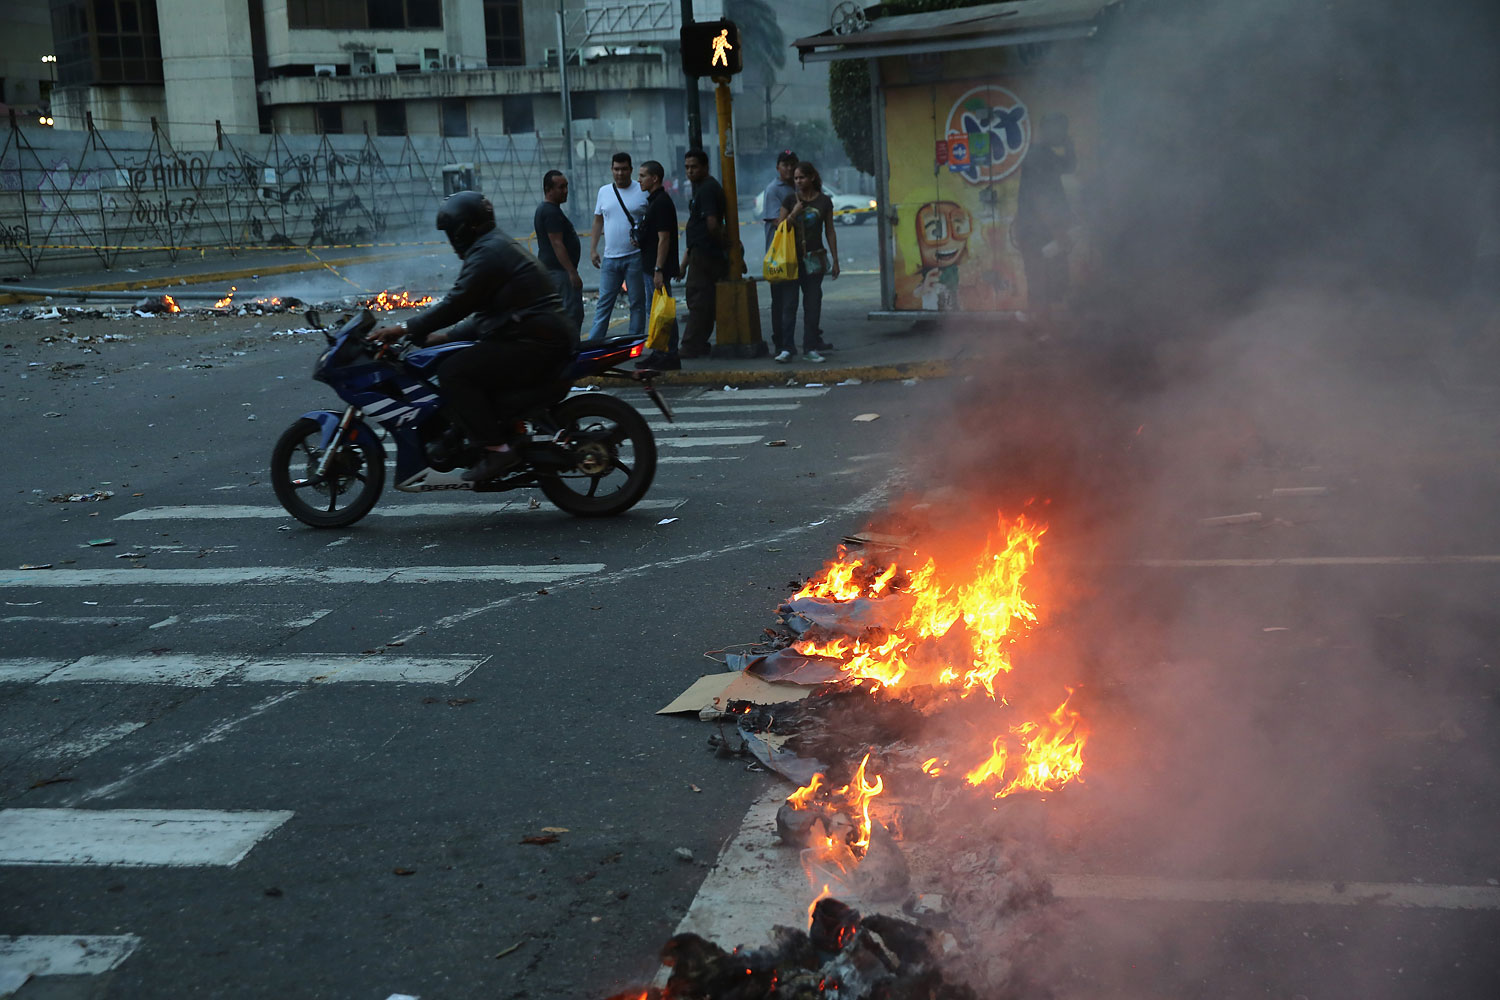 A motorcyclist rides through burning debris after an anti-government demonstration on Feb. 27, 2014 in Caracas.